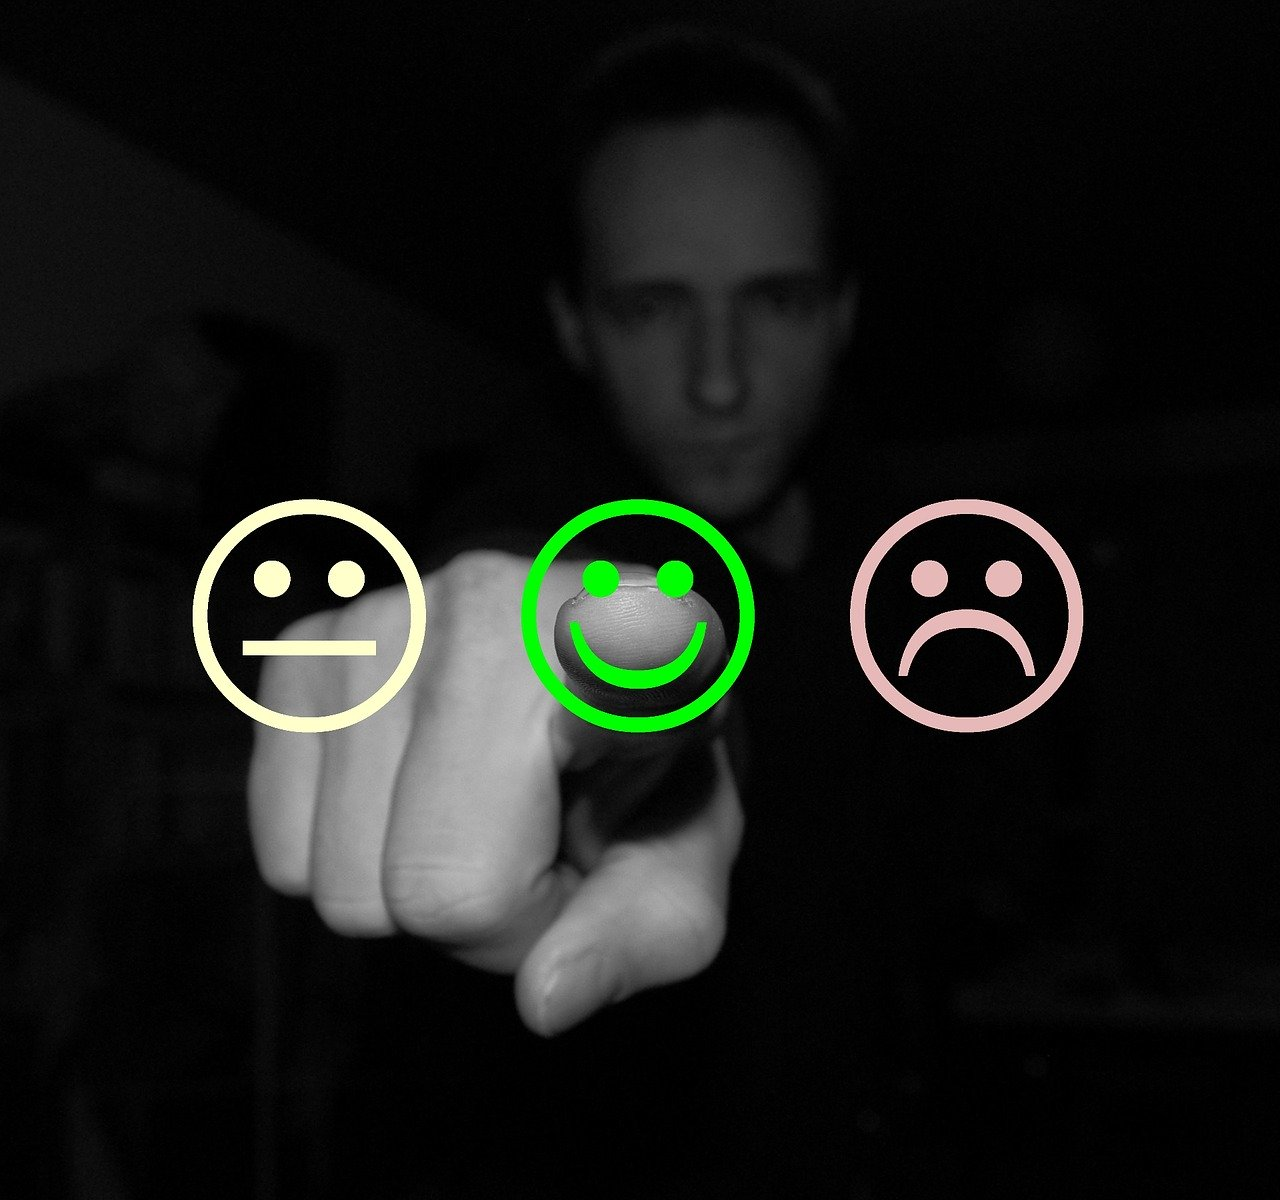 person in shadow selecting a happy face rather than neutral or sad face, leaving a positive review